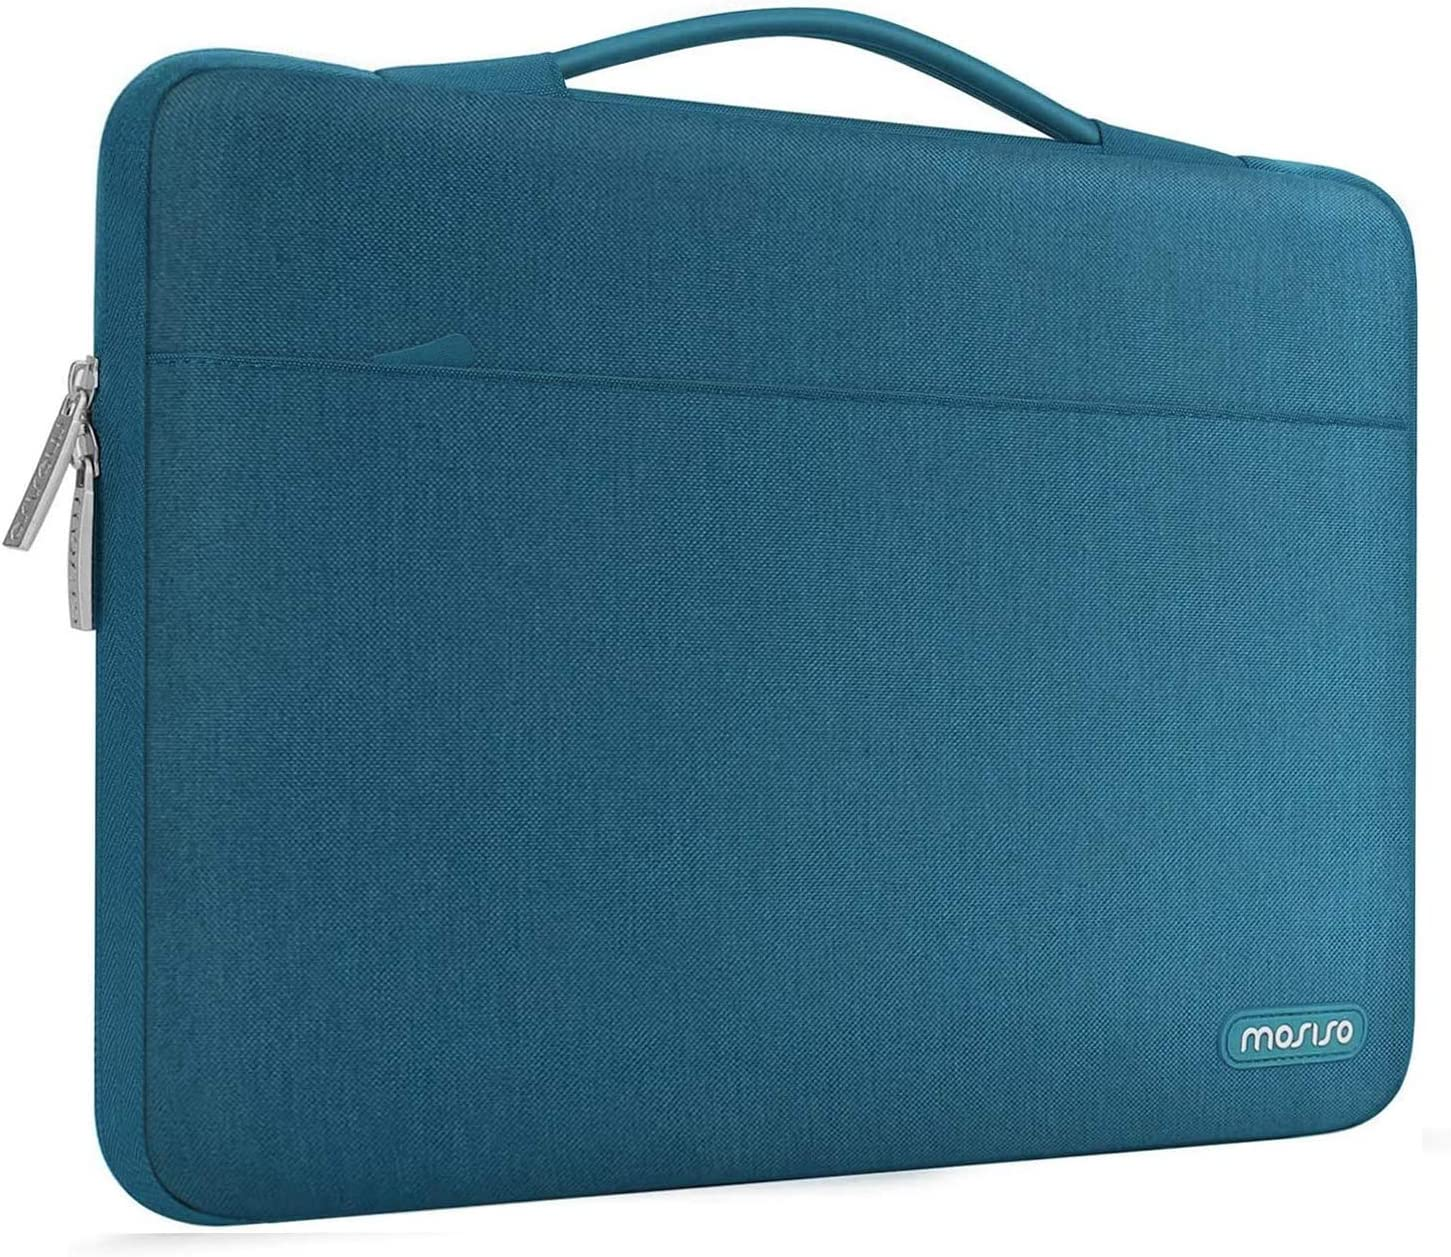 MOSISO Laptop Sleeve 360 Protective Case Bag Compatible with MacBook Pro 16 inch,15 15.4 15.6 inch Dell Lenovo HP Asus Acer Samsung Sony Chromebook,Polyester Briefcase with Trolley Belt, Deep Teal